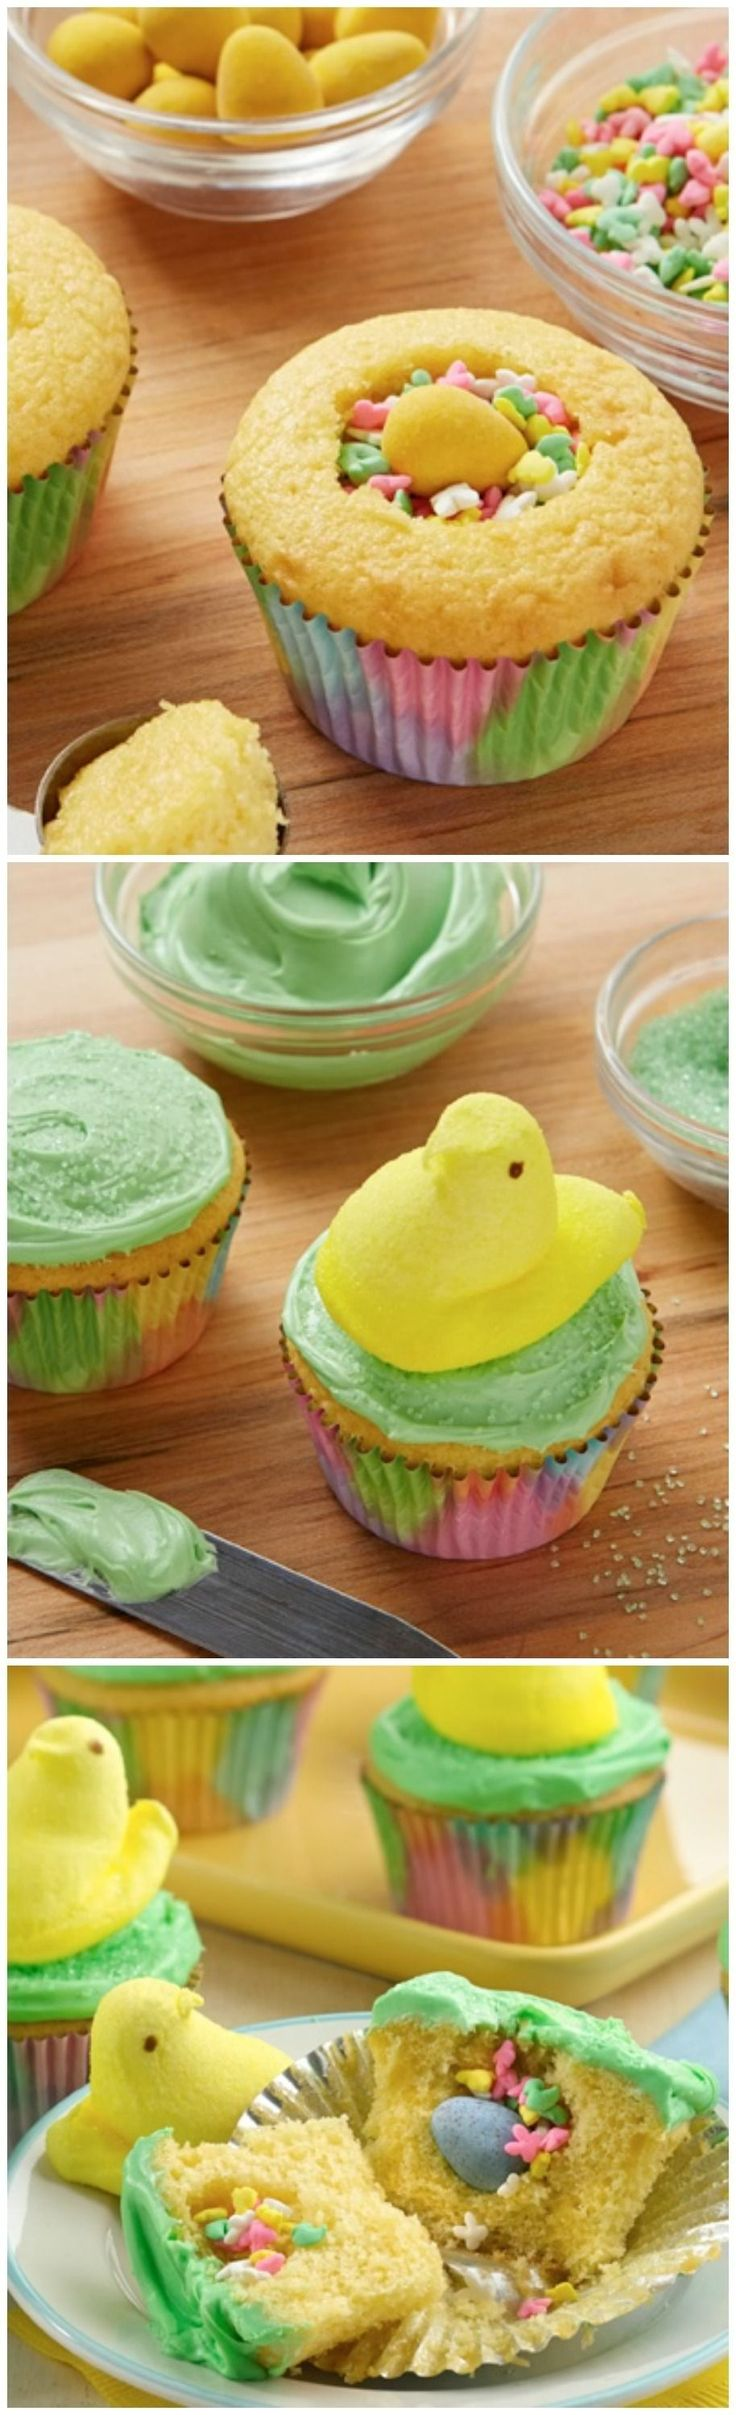 Suprise Easter cupcakes